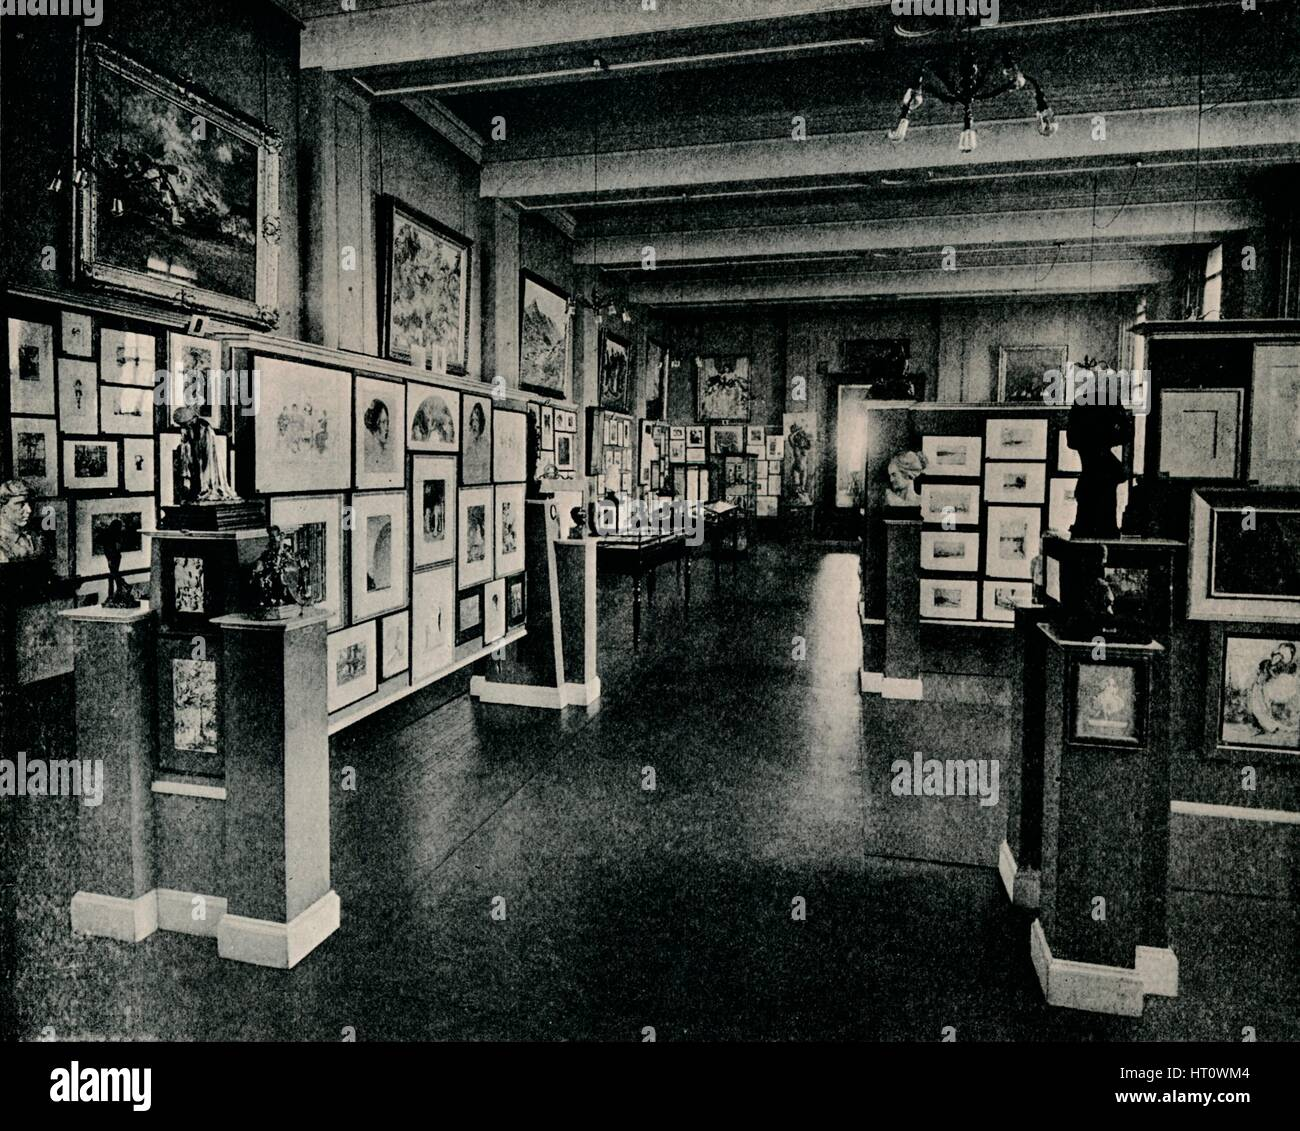 'Walker Art Gallery, Liverpool, Autumn Exhibition', 1915. Artist: Unknown. - Stock Image